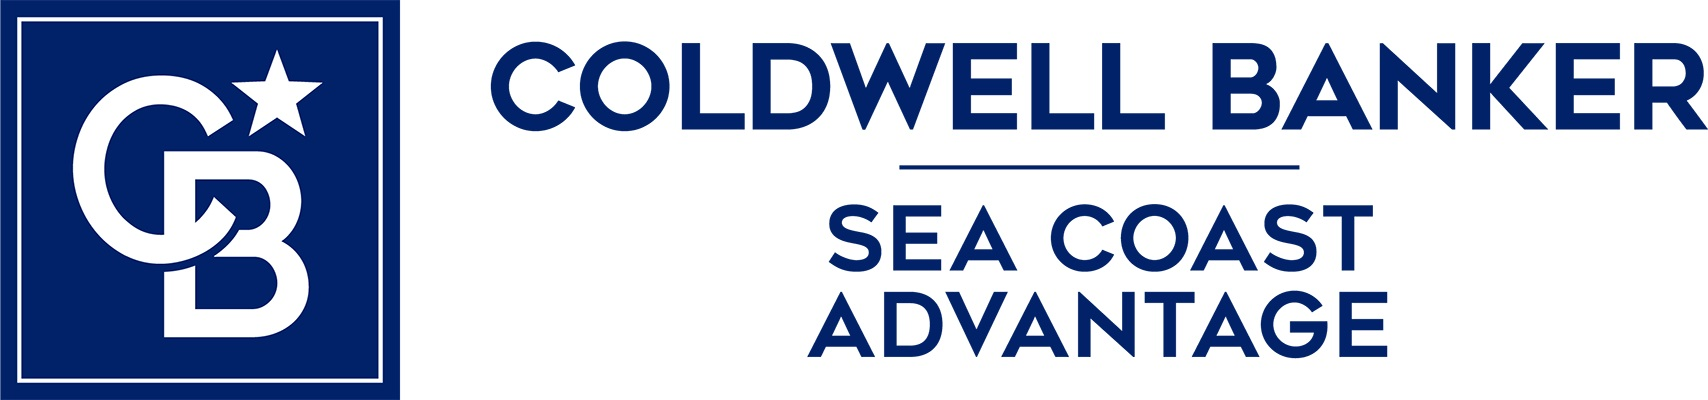 Elizabeth Quinn - Coldwell Banker Sea Coast Advantage Realty